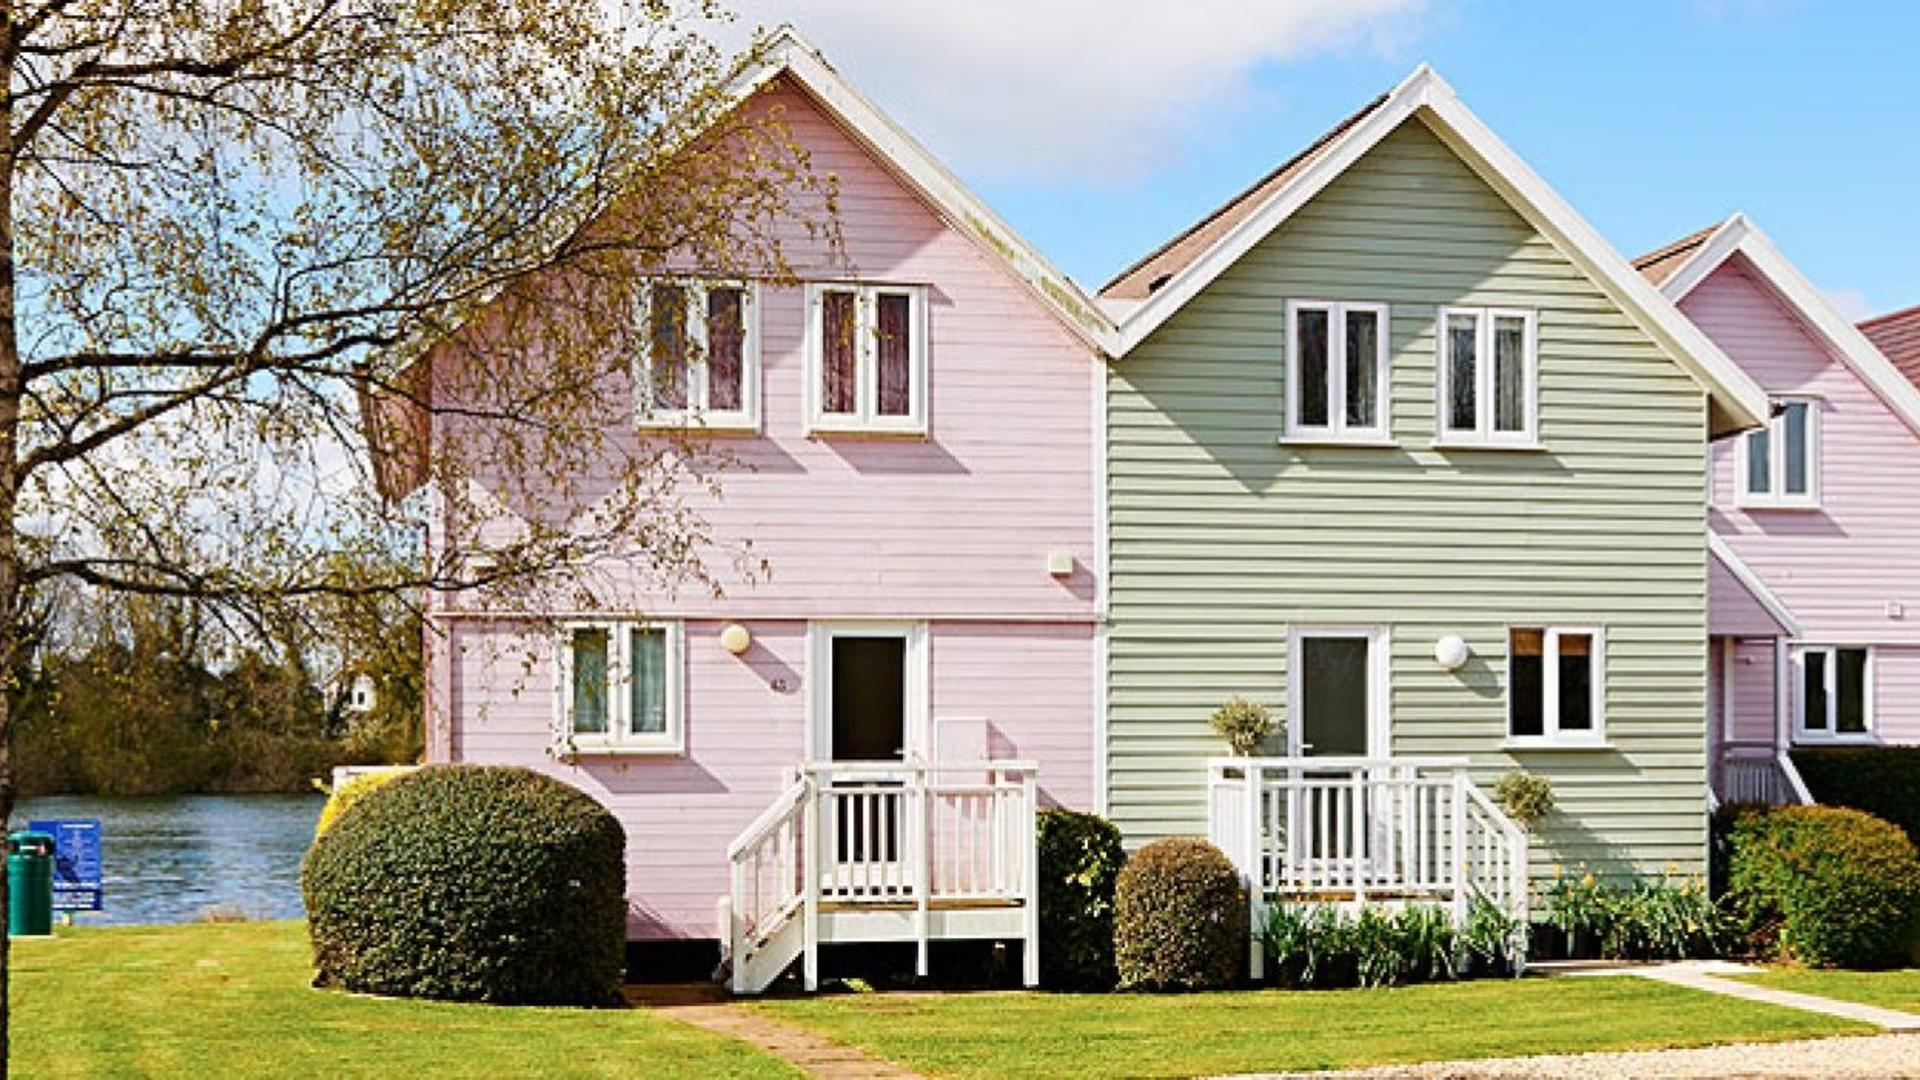 3 Bedroom Private cottage/shared facilities in Gloucestershire, United Kingdom